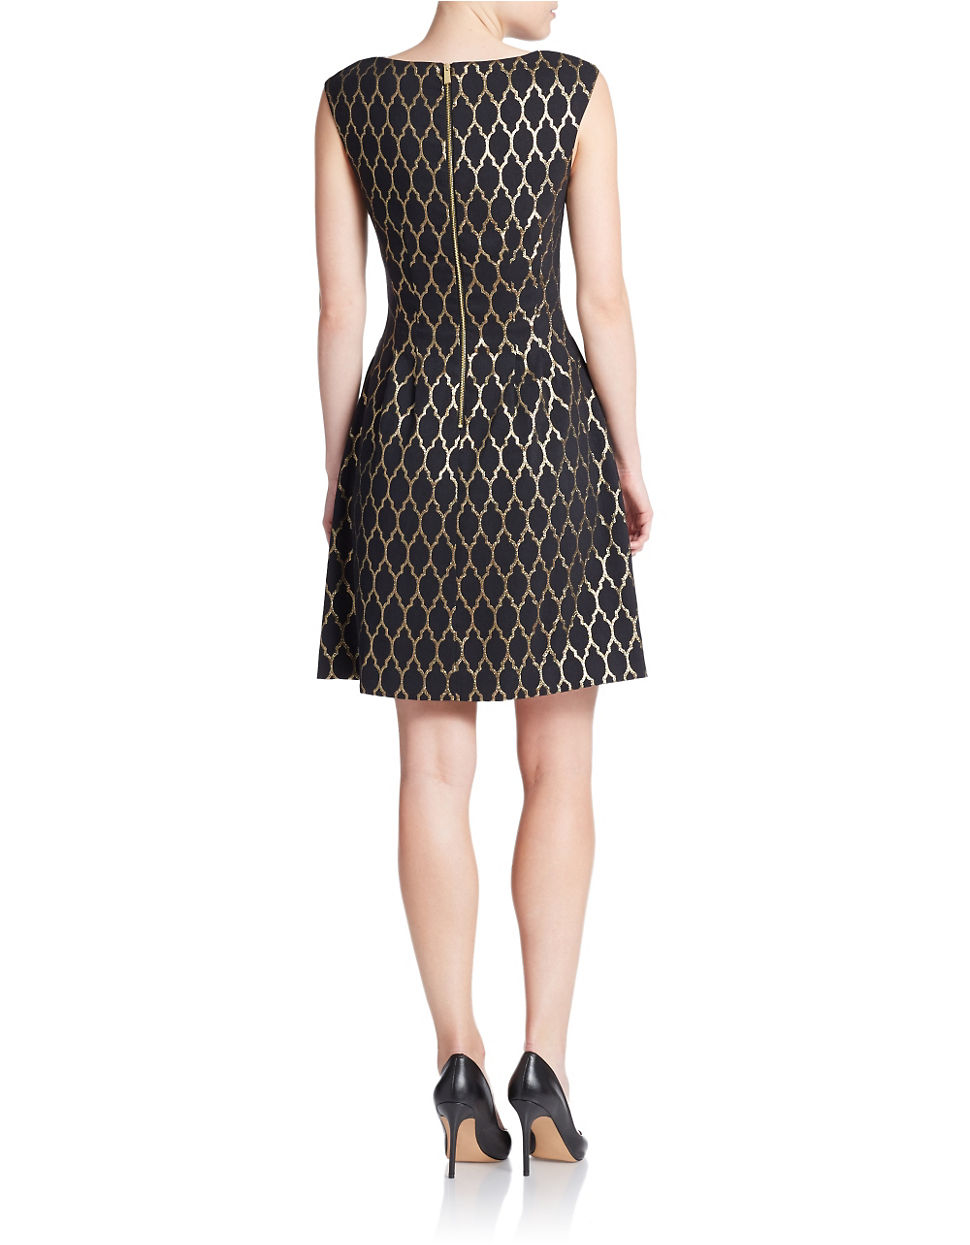 Vince Camuto Metallic Patterned Fit And Flare Dress In